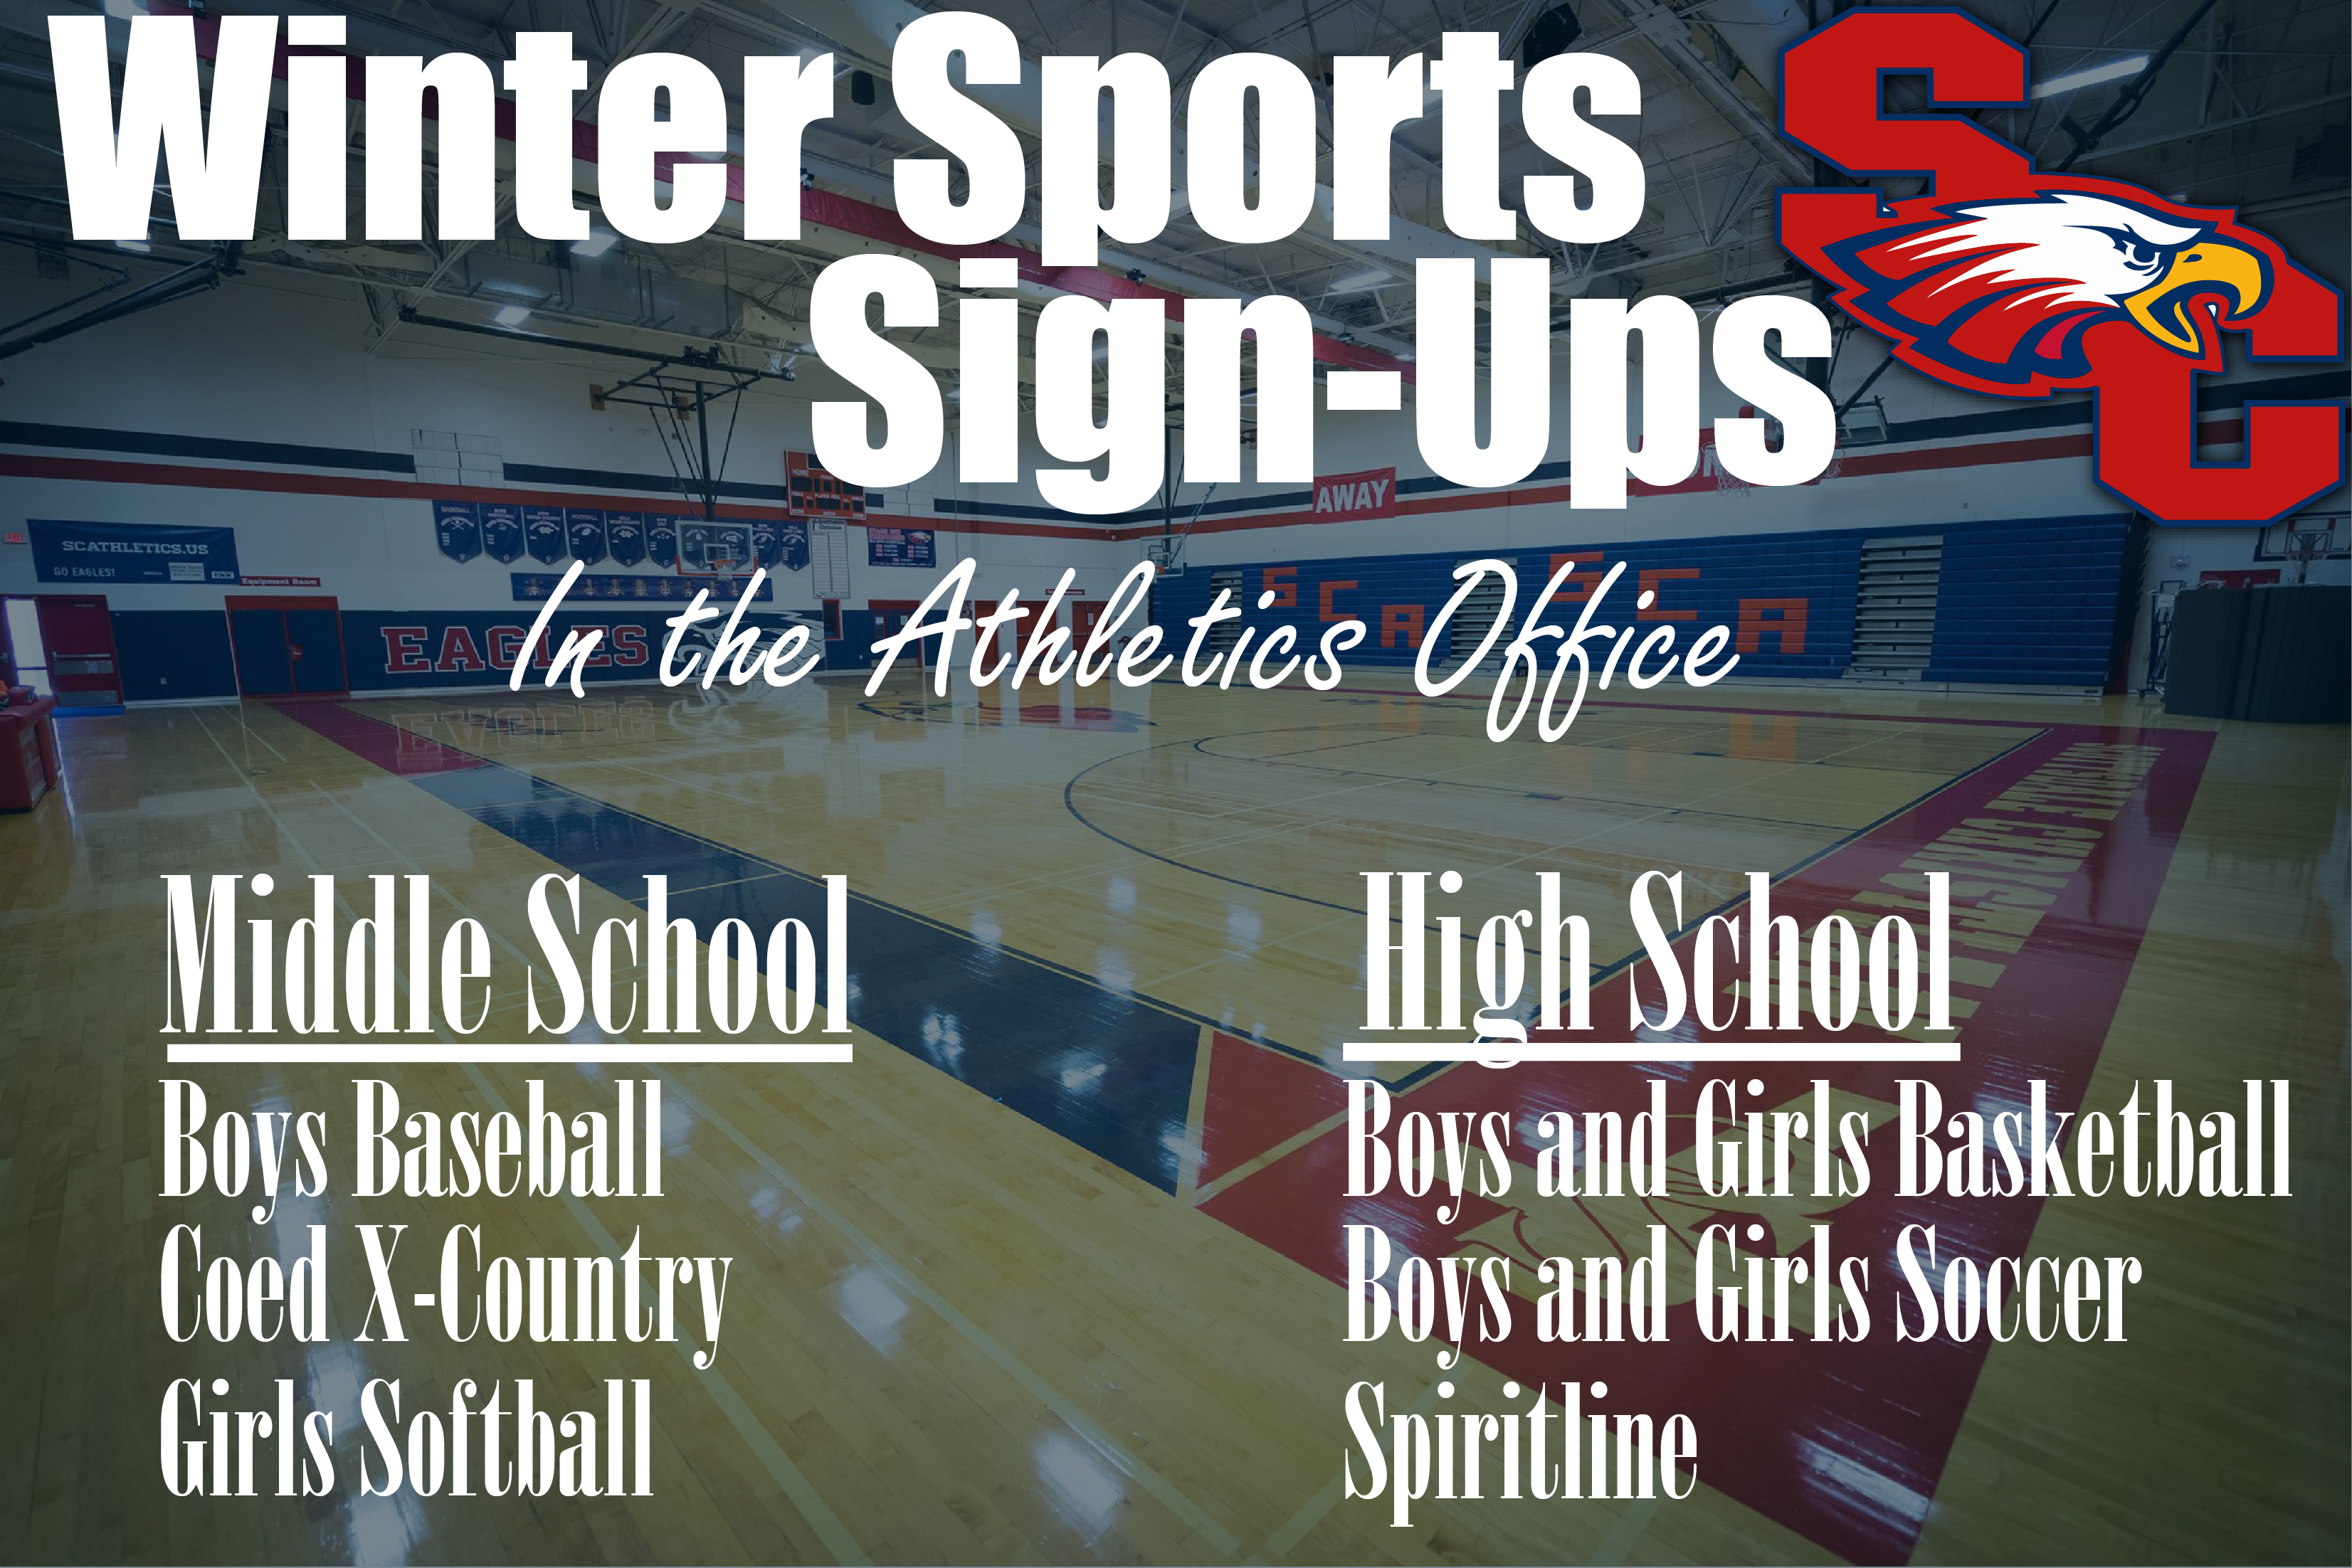 Winter Sports Sign-Ups!